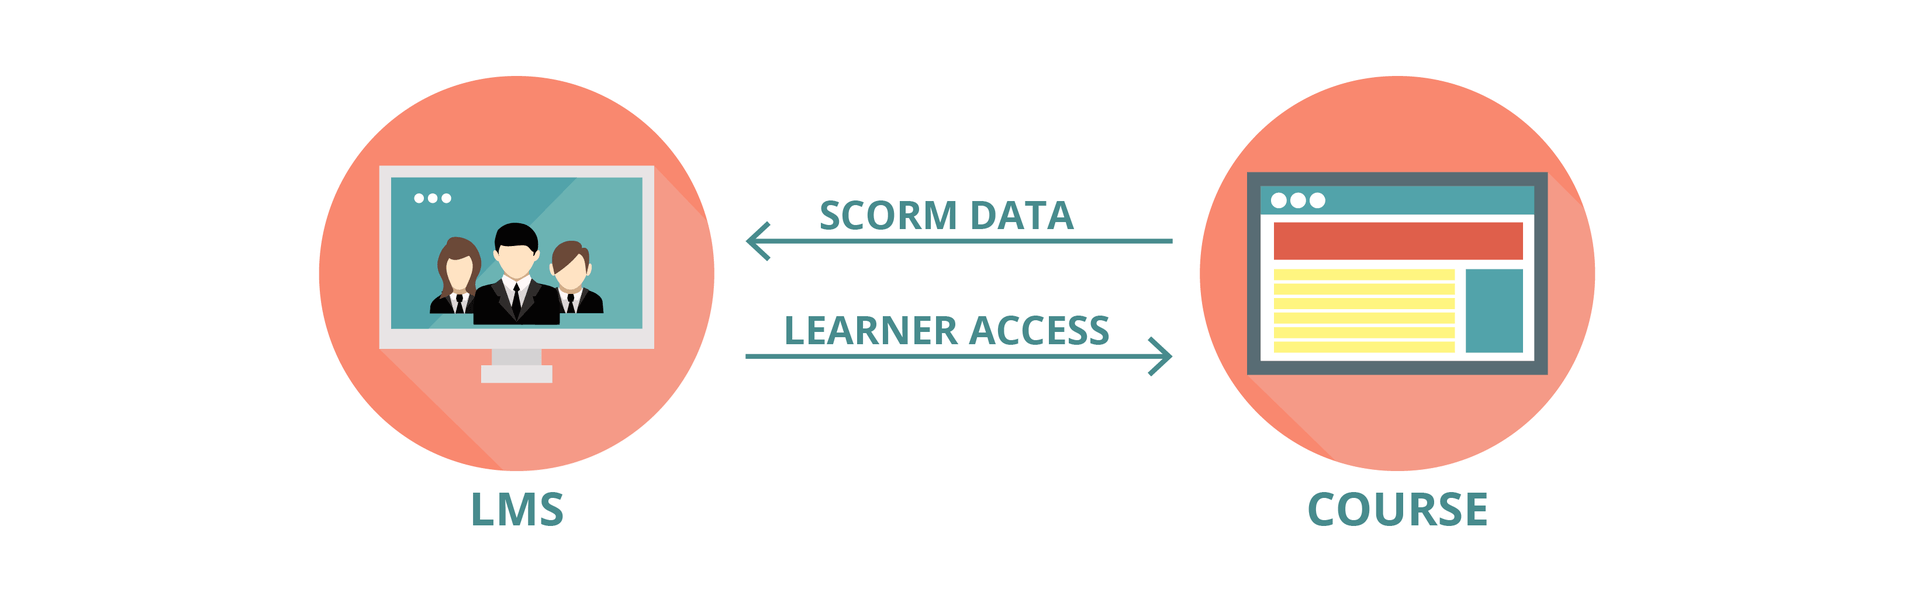 Icon of LMS and Course interacting. Learners access course on LMS and course sends SCORM data to LMS.